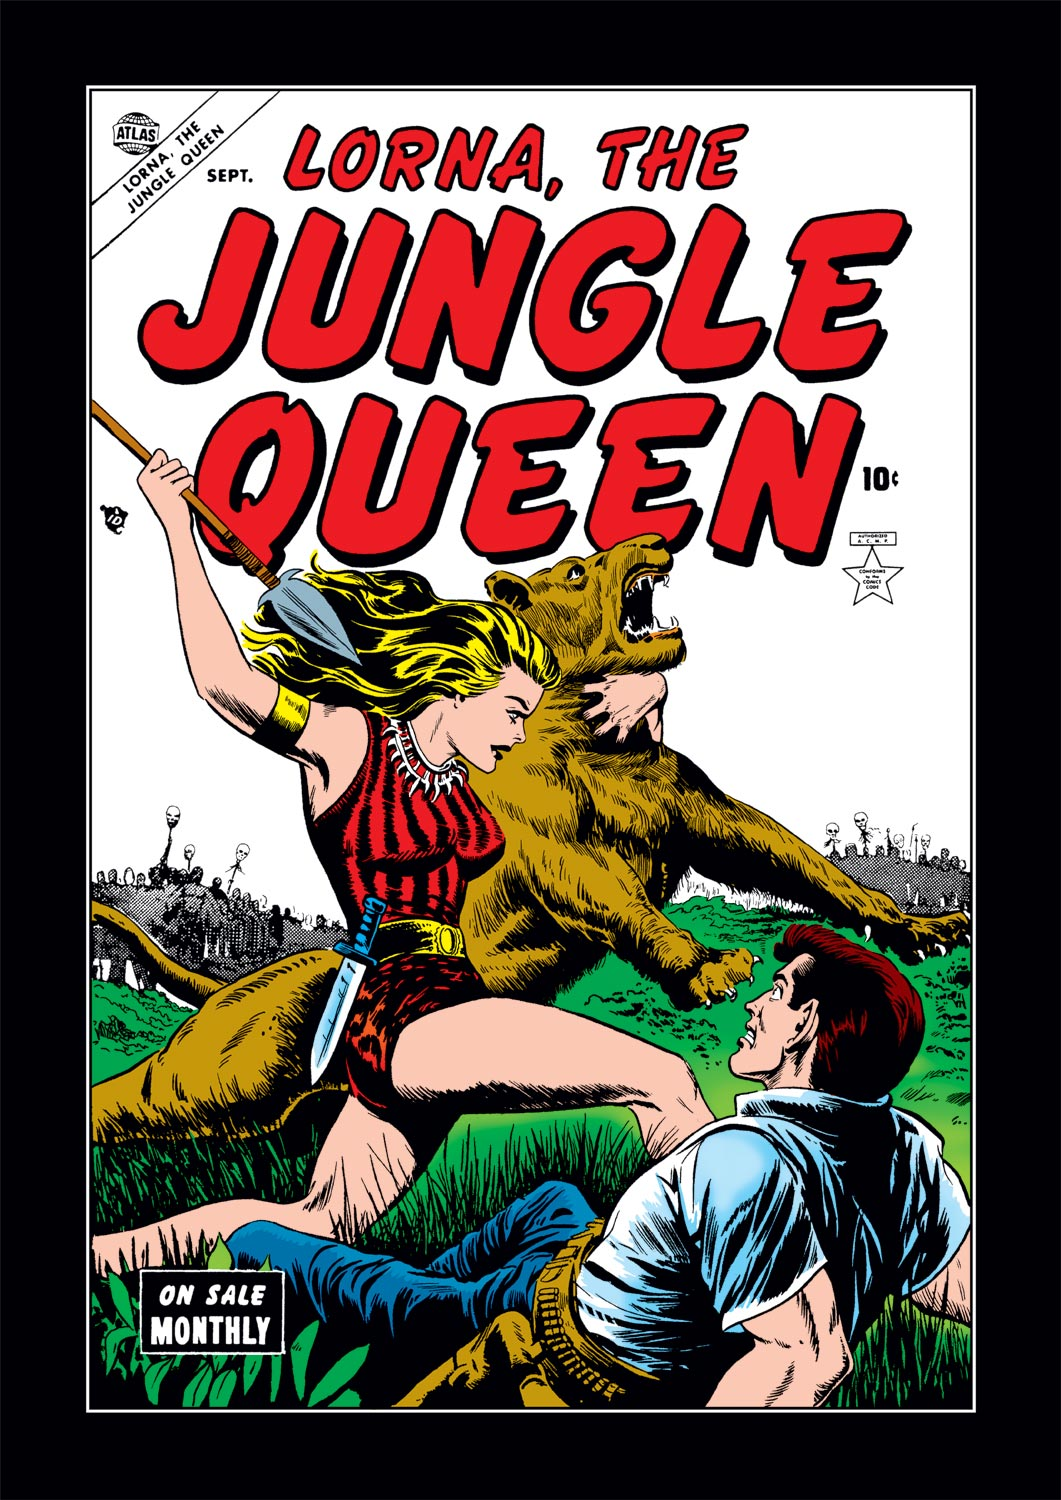 Lorna the Jungle Queen (1953) #3